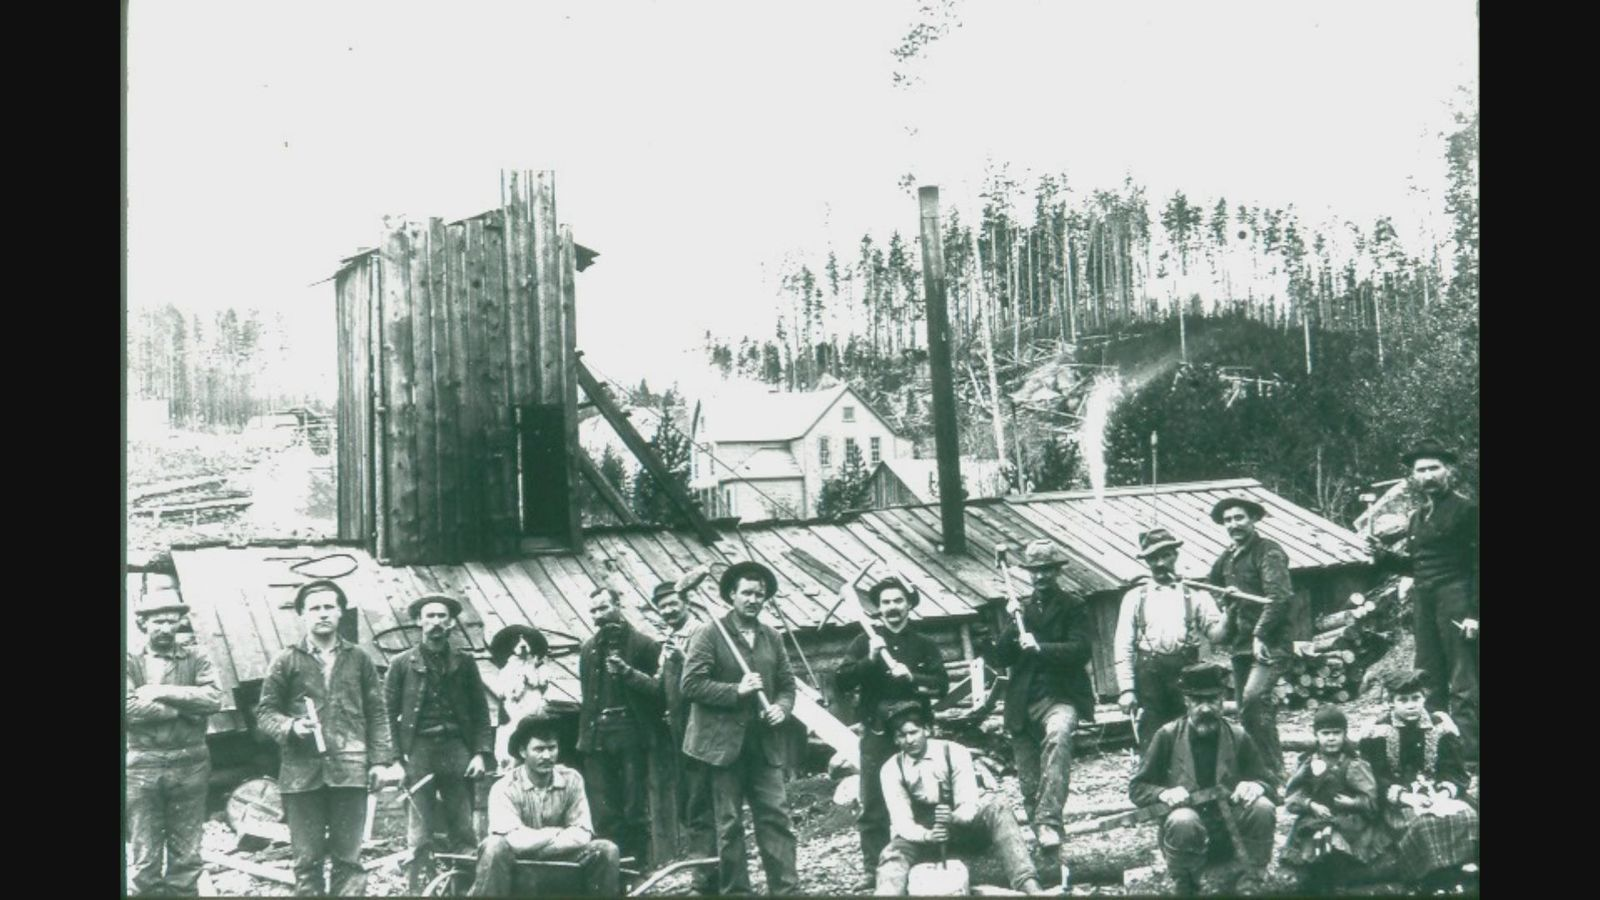 In its hay day, as many as 1,000 people lived and worked in Garnet.